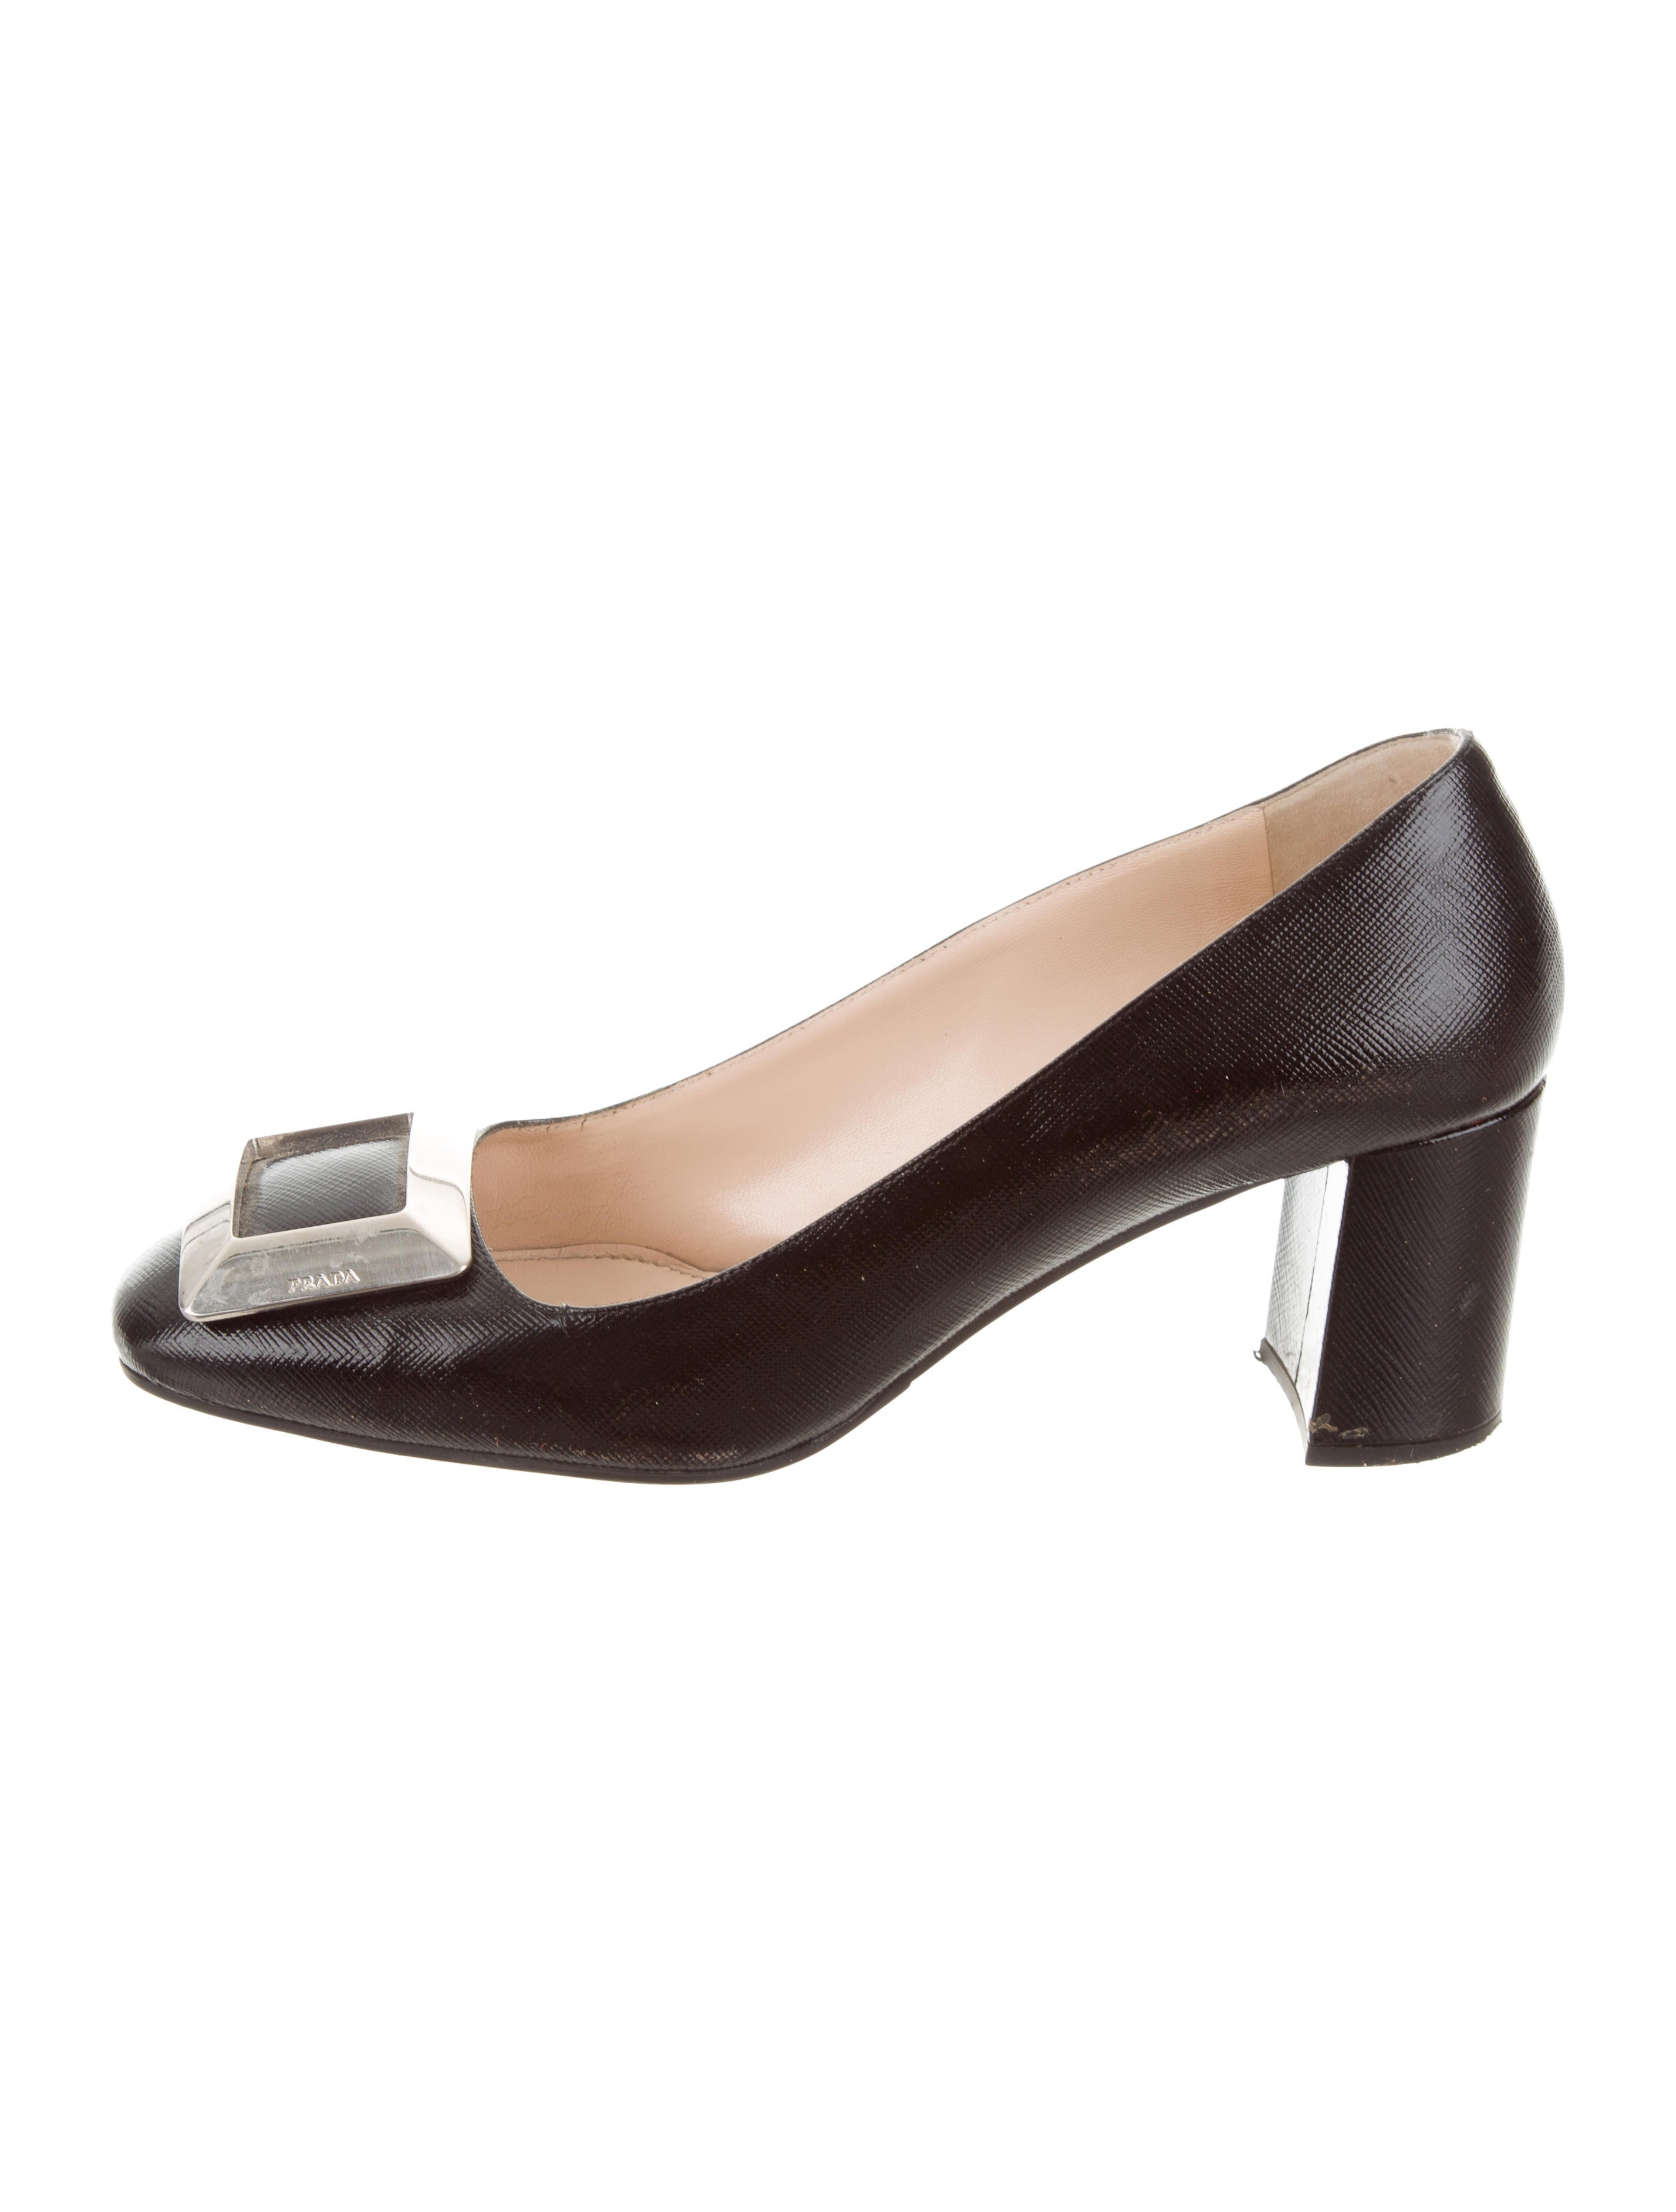 popular cheap online finishline cheap online Prada Embellished Square-Toe Pumps sale low cost outlet free shipping fl3MVYjbH